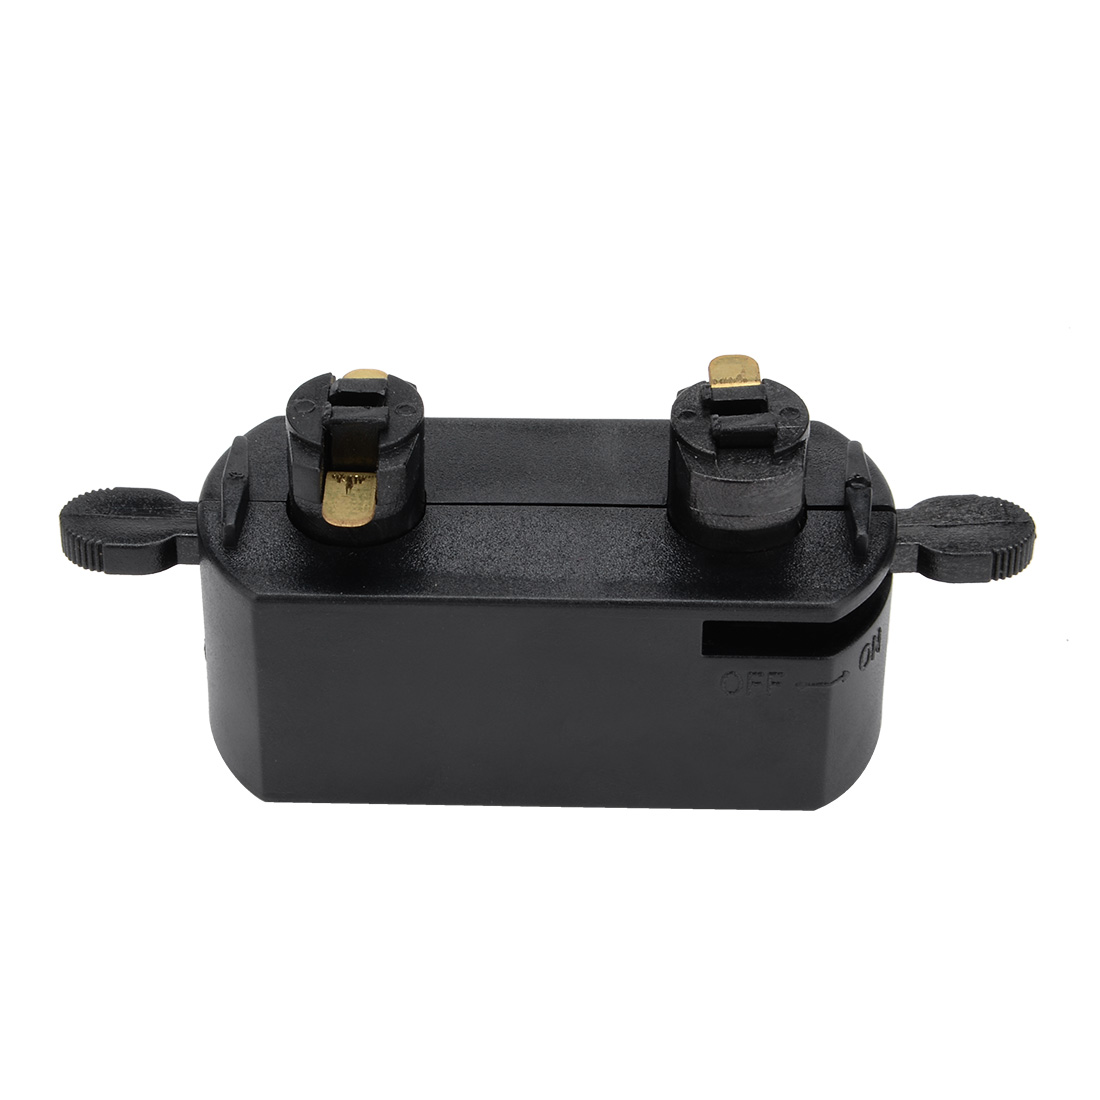 3-Wire Track Rail Joint Connector On/off Control Lighting Fittings GT-301 Black - image 1 of 2